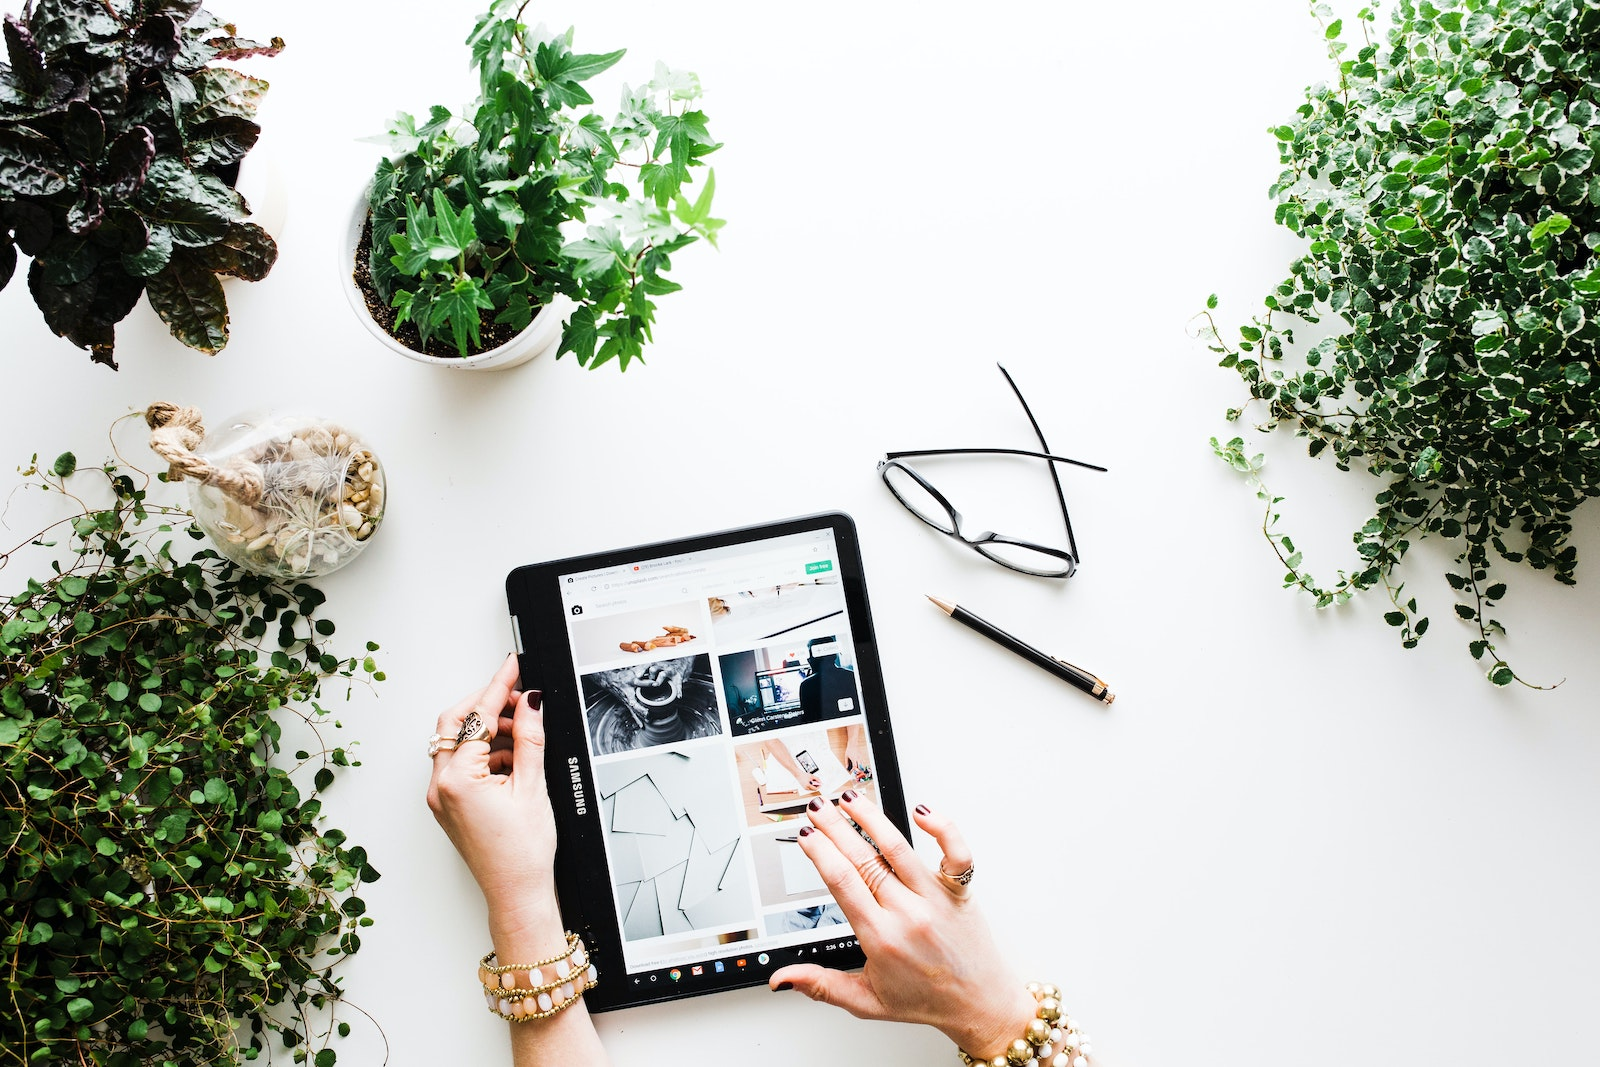 12 Best Shopify Apps For DTC Brands (2020 Edition)